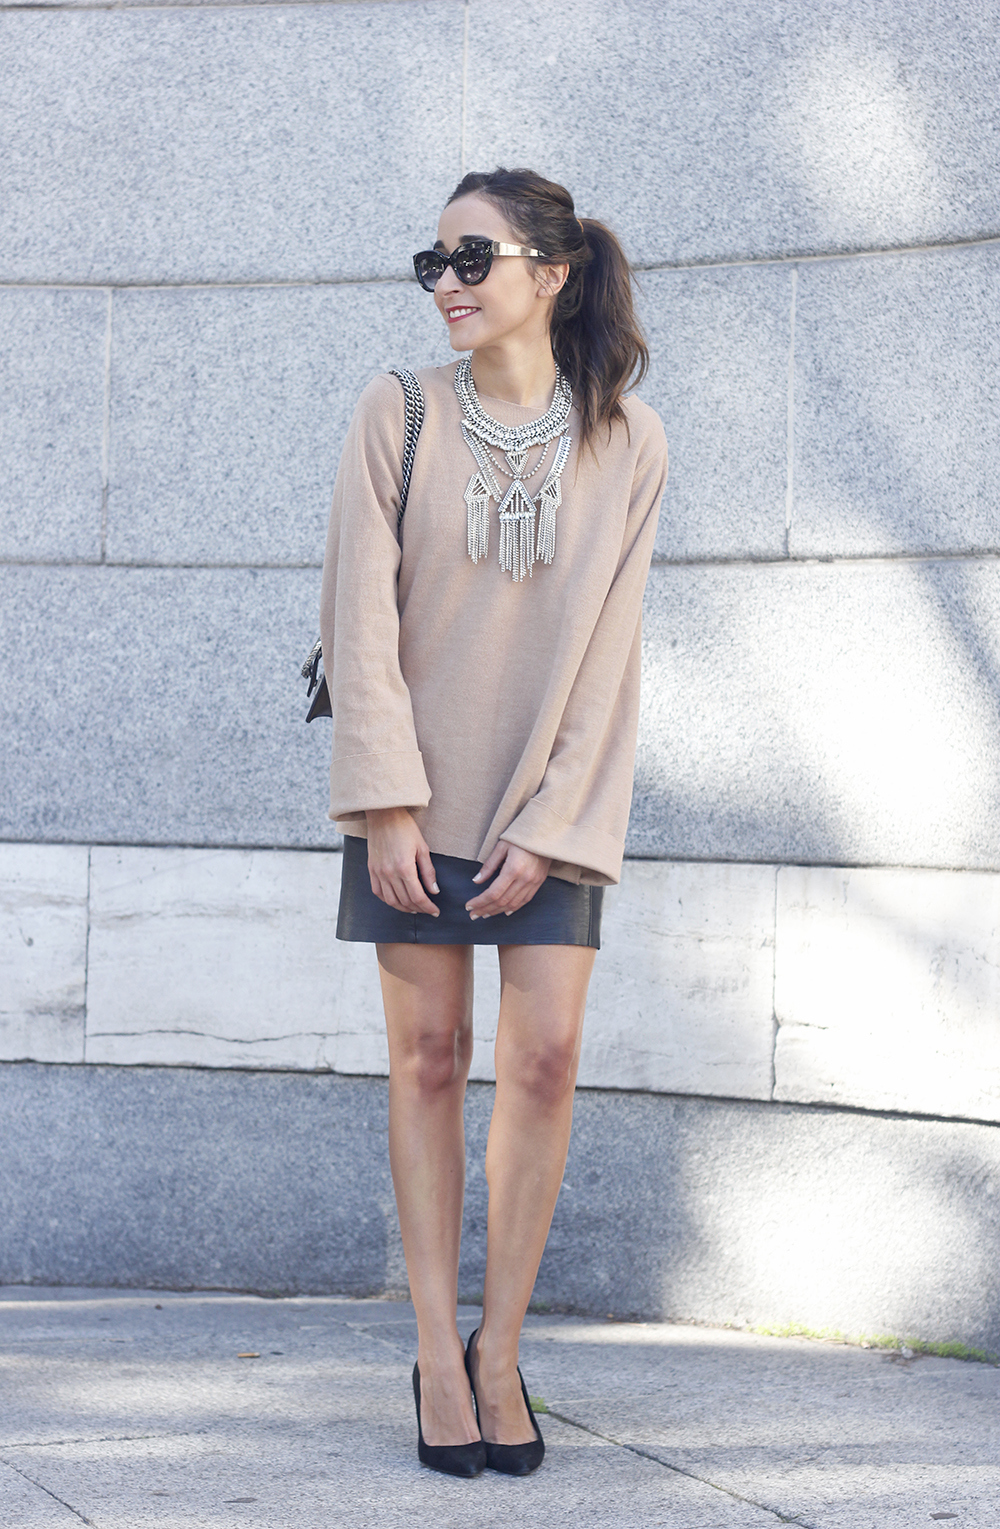 nude sweater leather skirt heels sunnies gucci bag fashion outfit style03